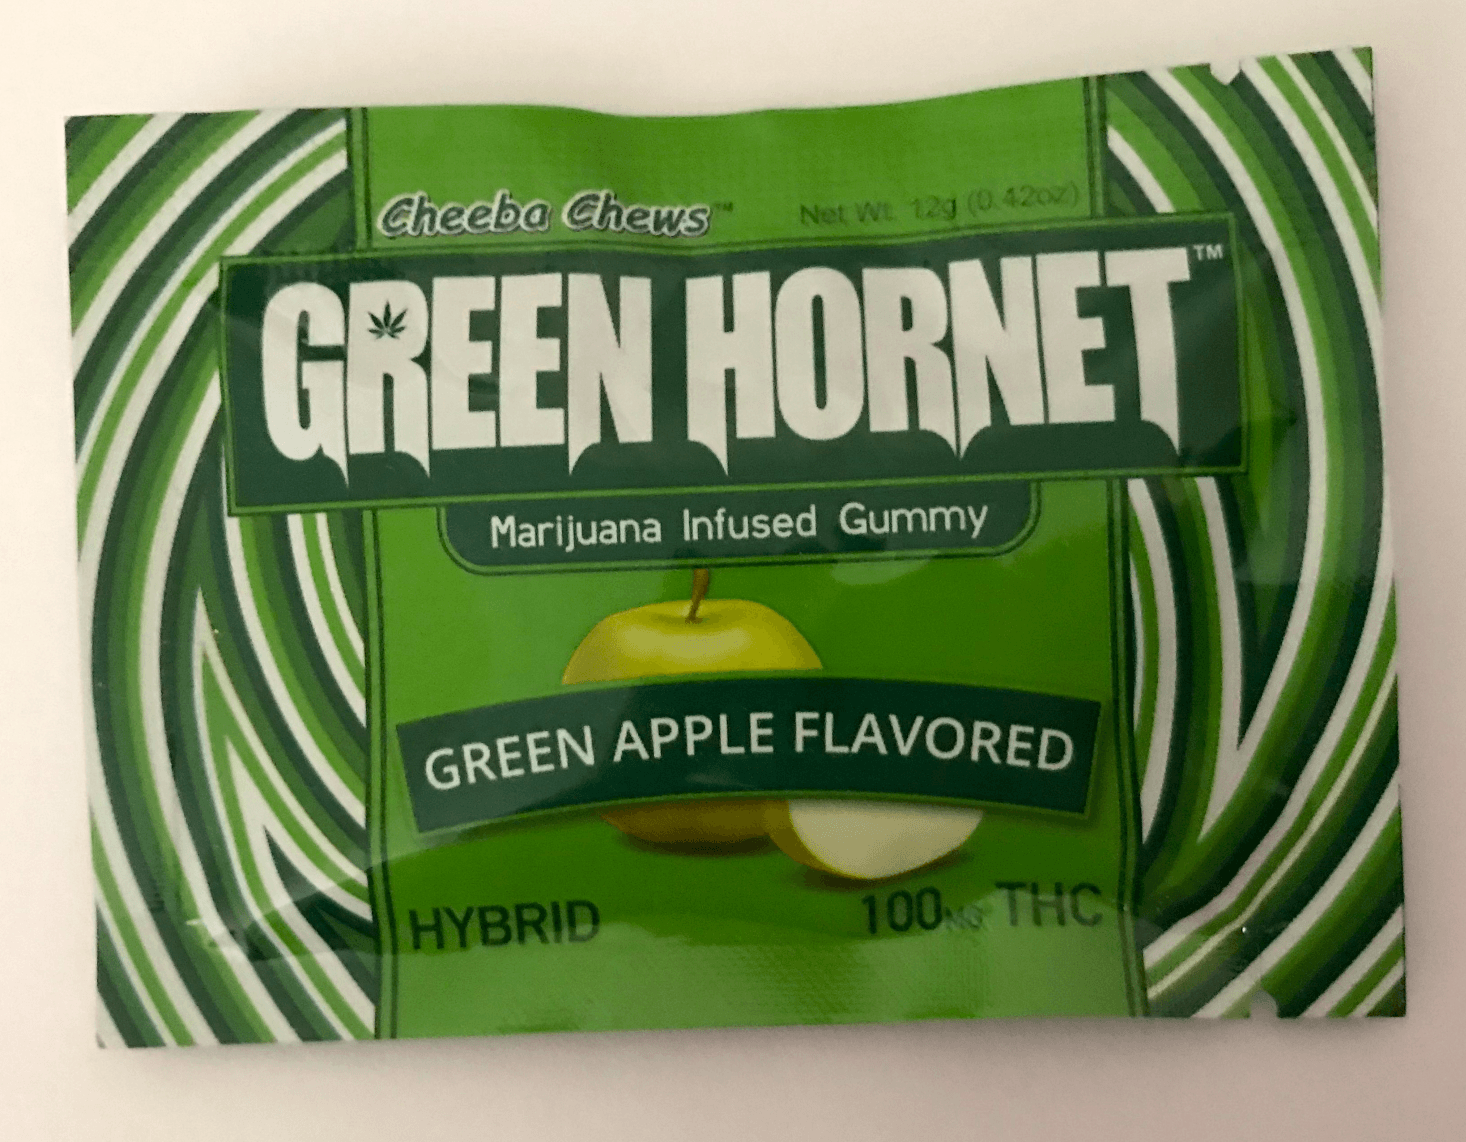 marijuana infused gummy delivered in woodland hills, CA